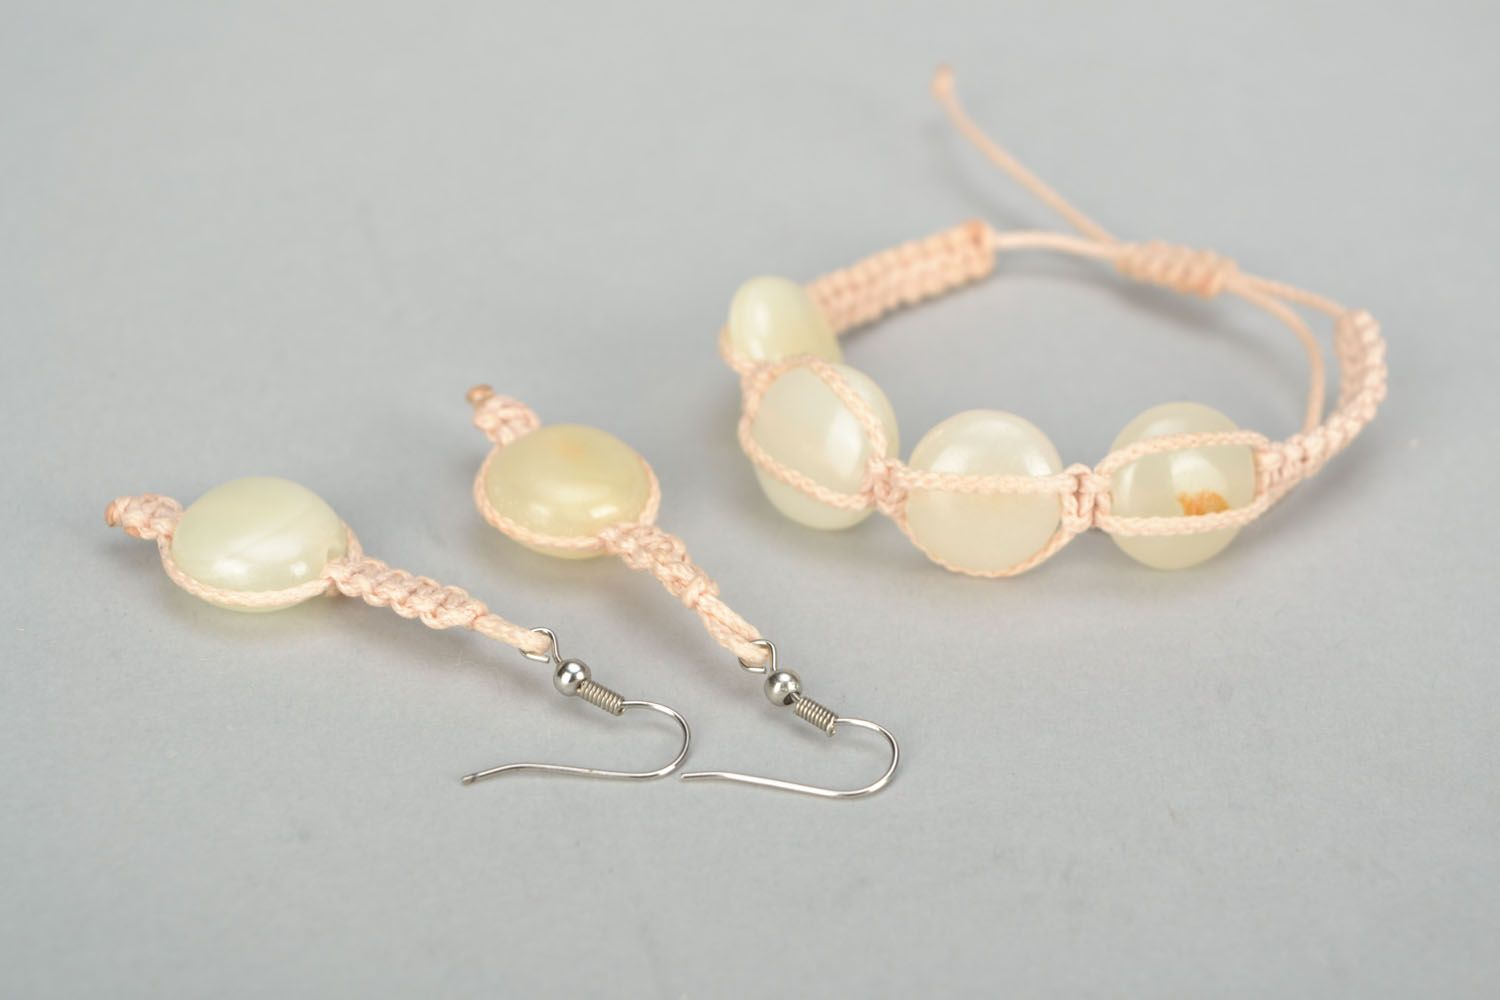 Jewelry set with natural stones photo 3